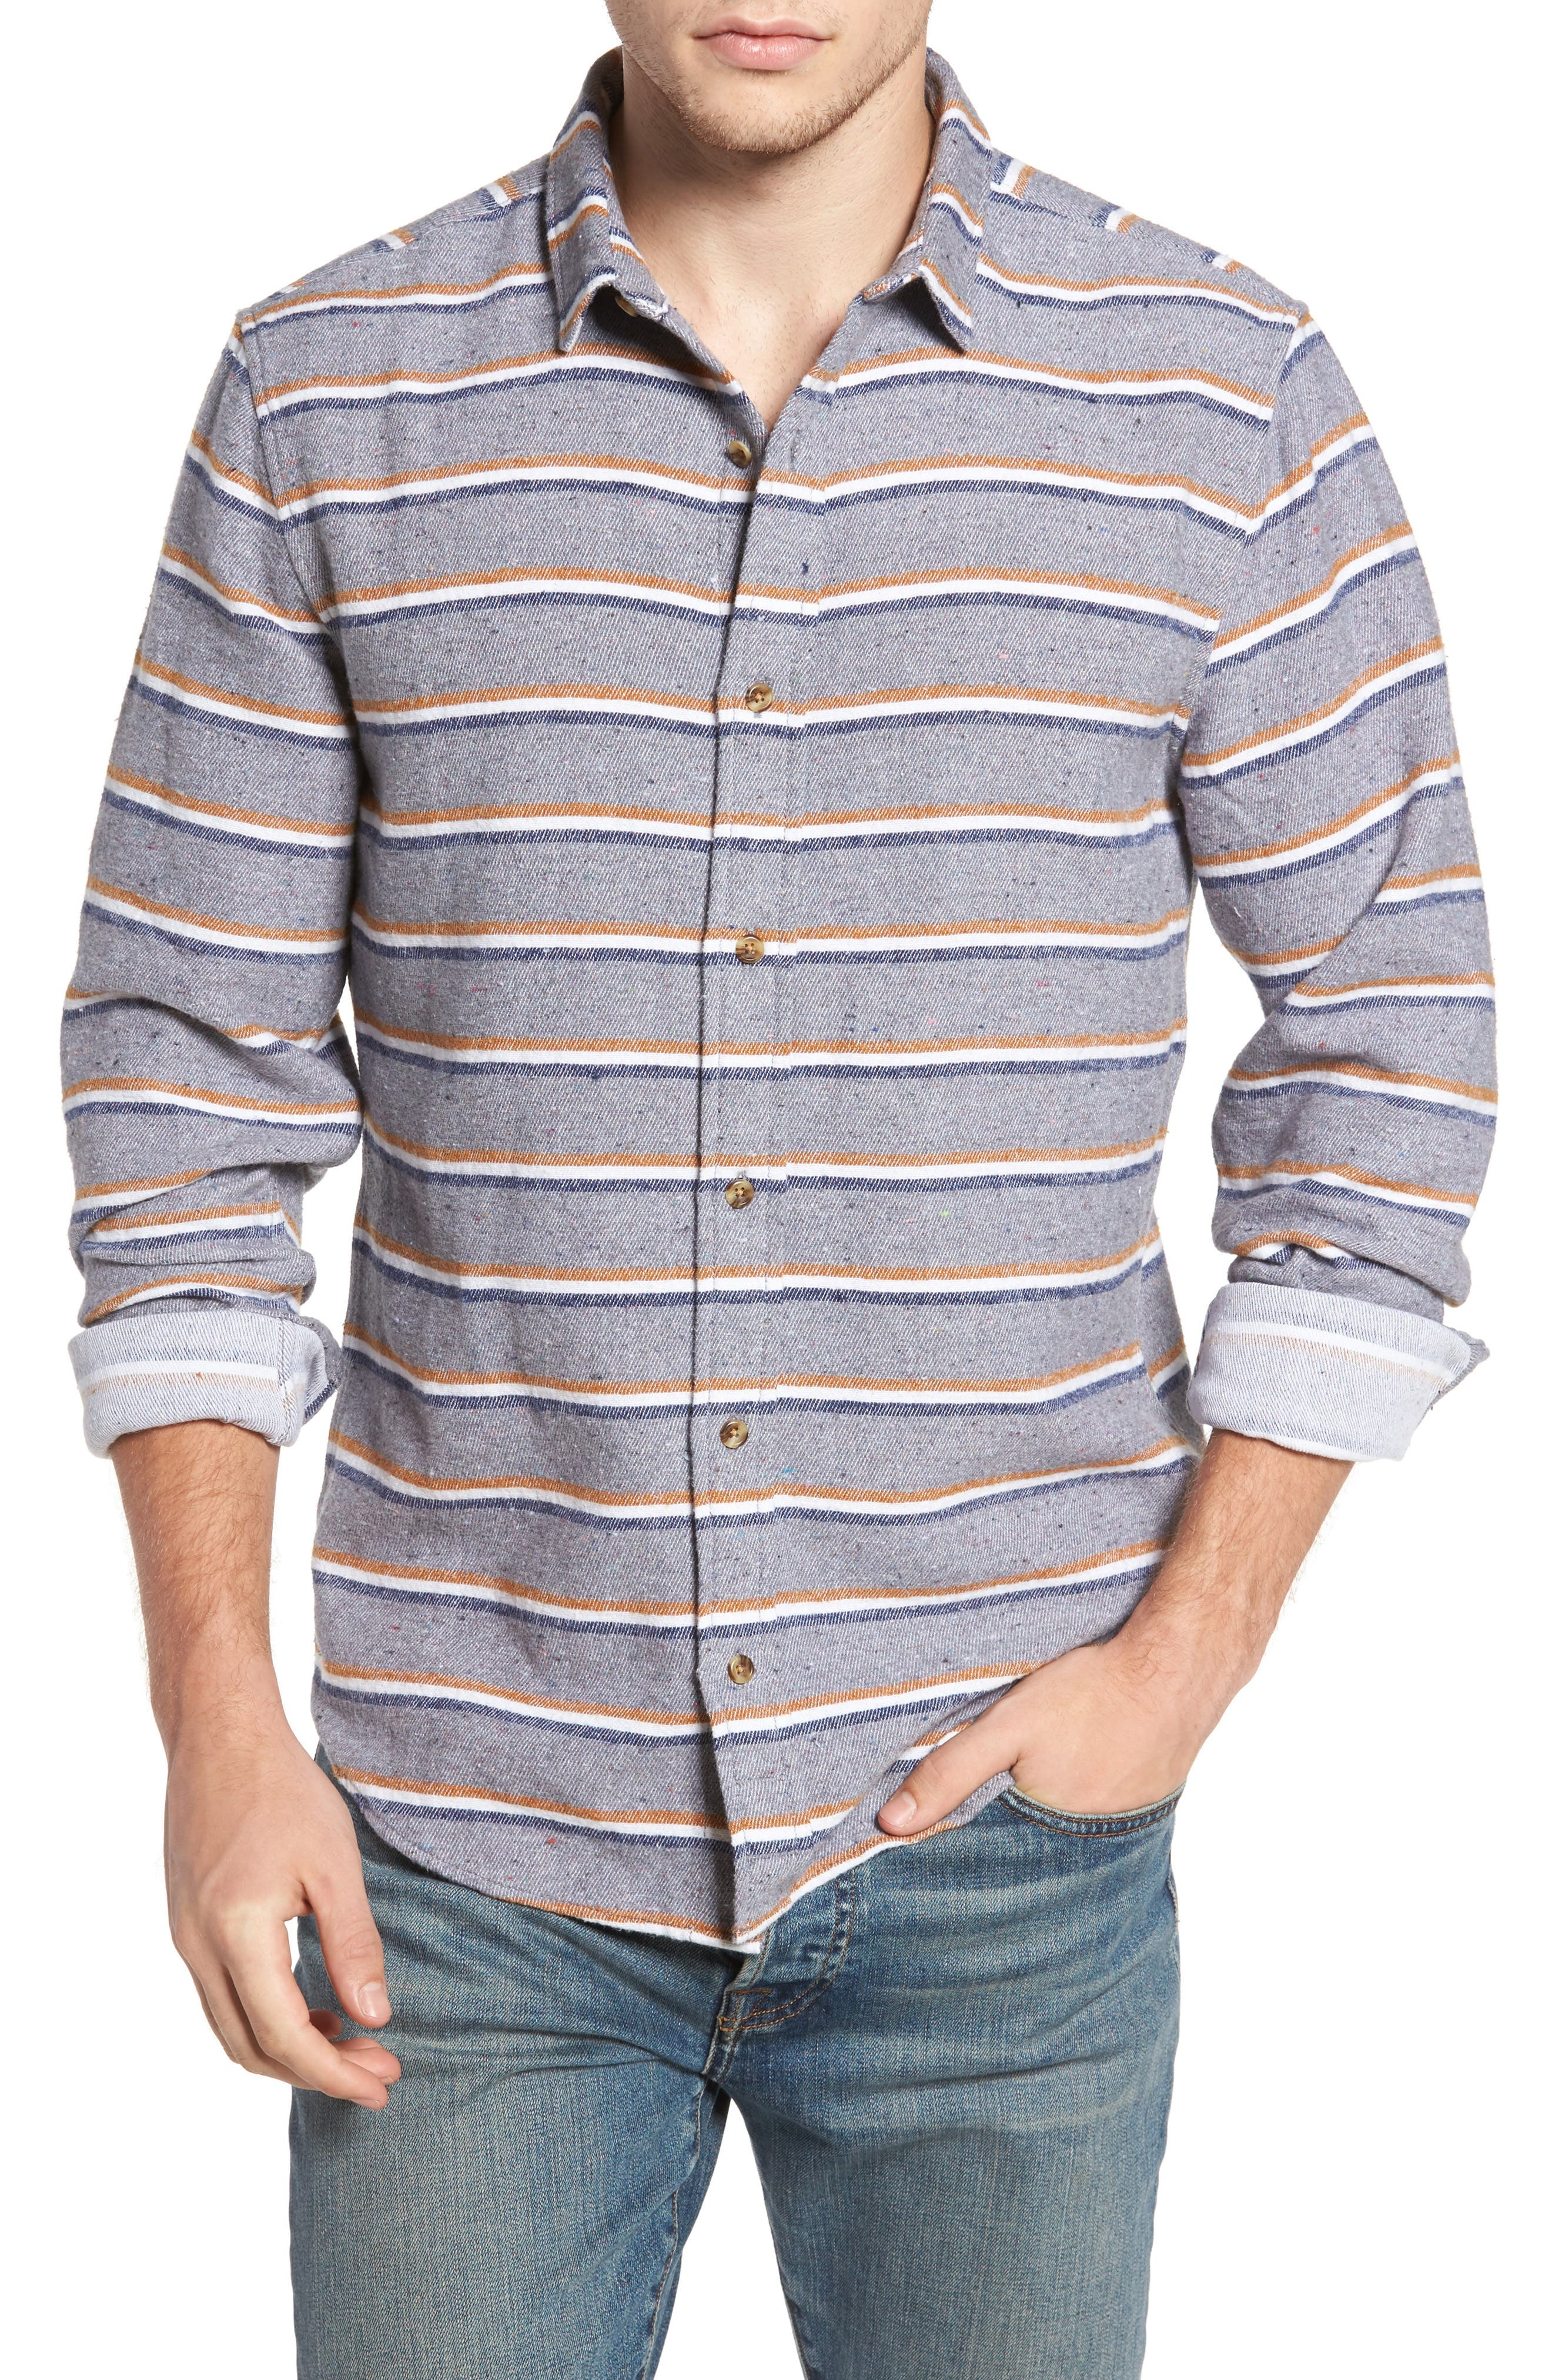 Alternate Image 1 Selected - 1901 Stripe Flannel Shirt